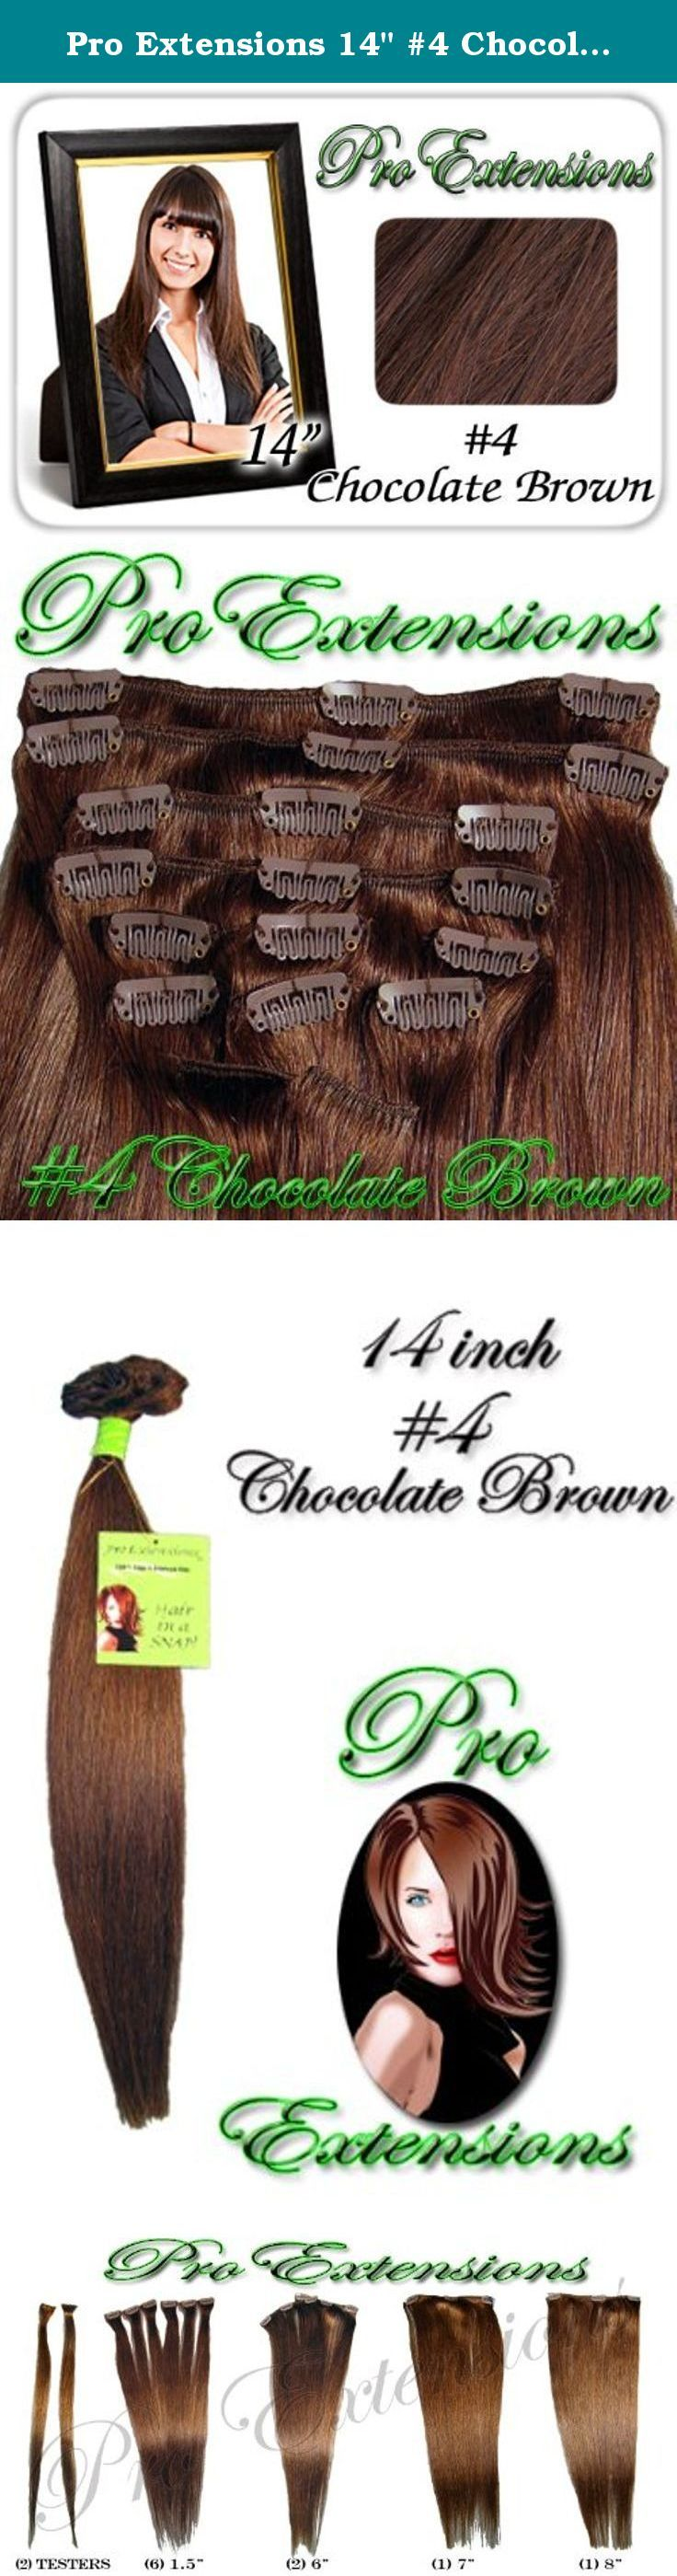 """Pro Extensions 14"""" #4 Chocolate Brown Clip-in Human Hair Extensions. This Pro Extensions clip in hair extension set is Colored #4, CHOCOLATE BROWN. Pro Extensions are 100% human hair extensions. This set of hair extensions is 14"""" long and 39"""" wide. This hair extensions set is Grade A, Color #4, CHOCOLATE BROWN. The set weight is 90 grams. This set of extensions is straight without any body wave. Pro Extensions can add length, volume or texture to your current hair style. The extensions…"""